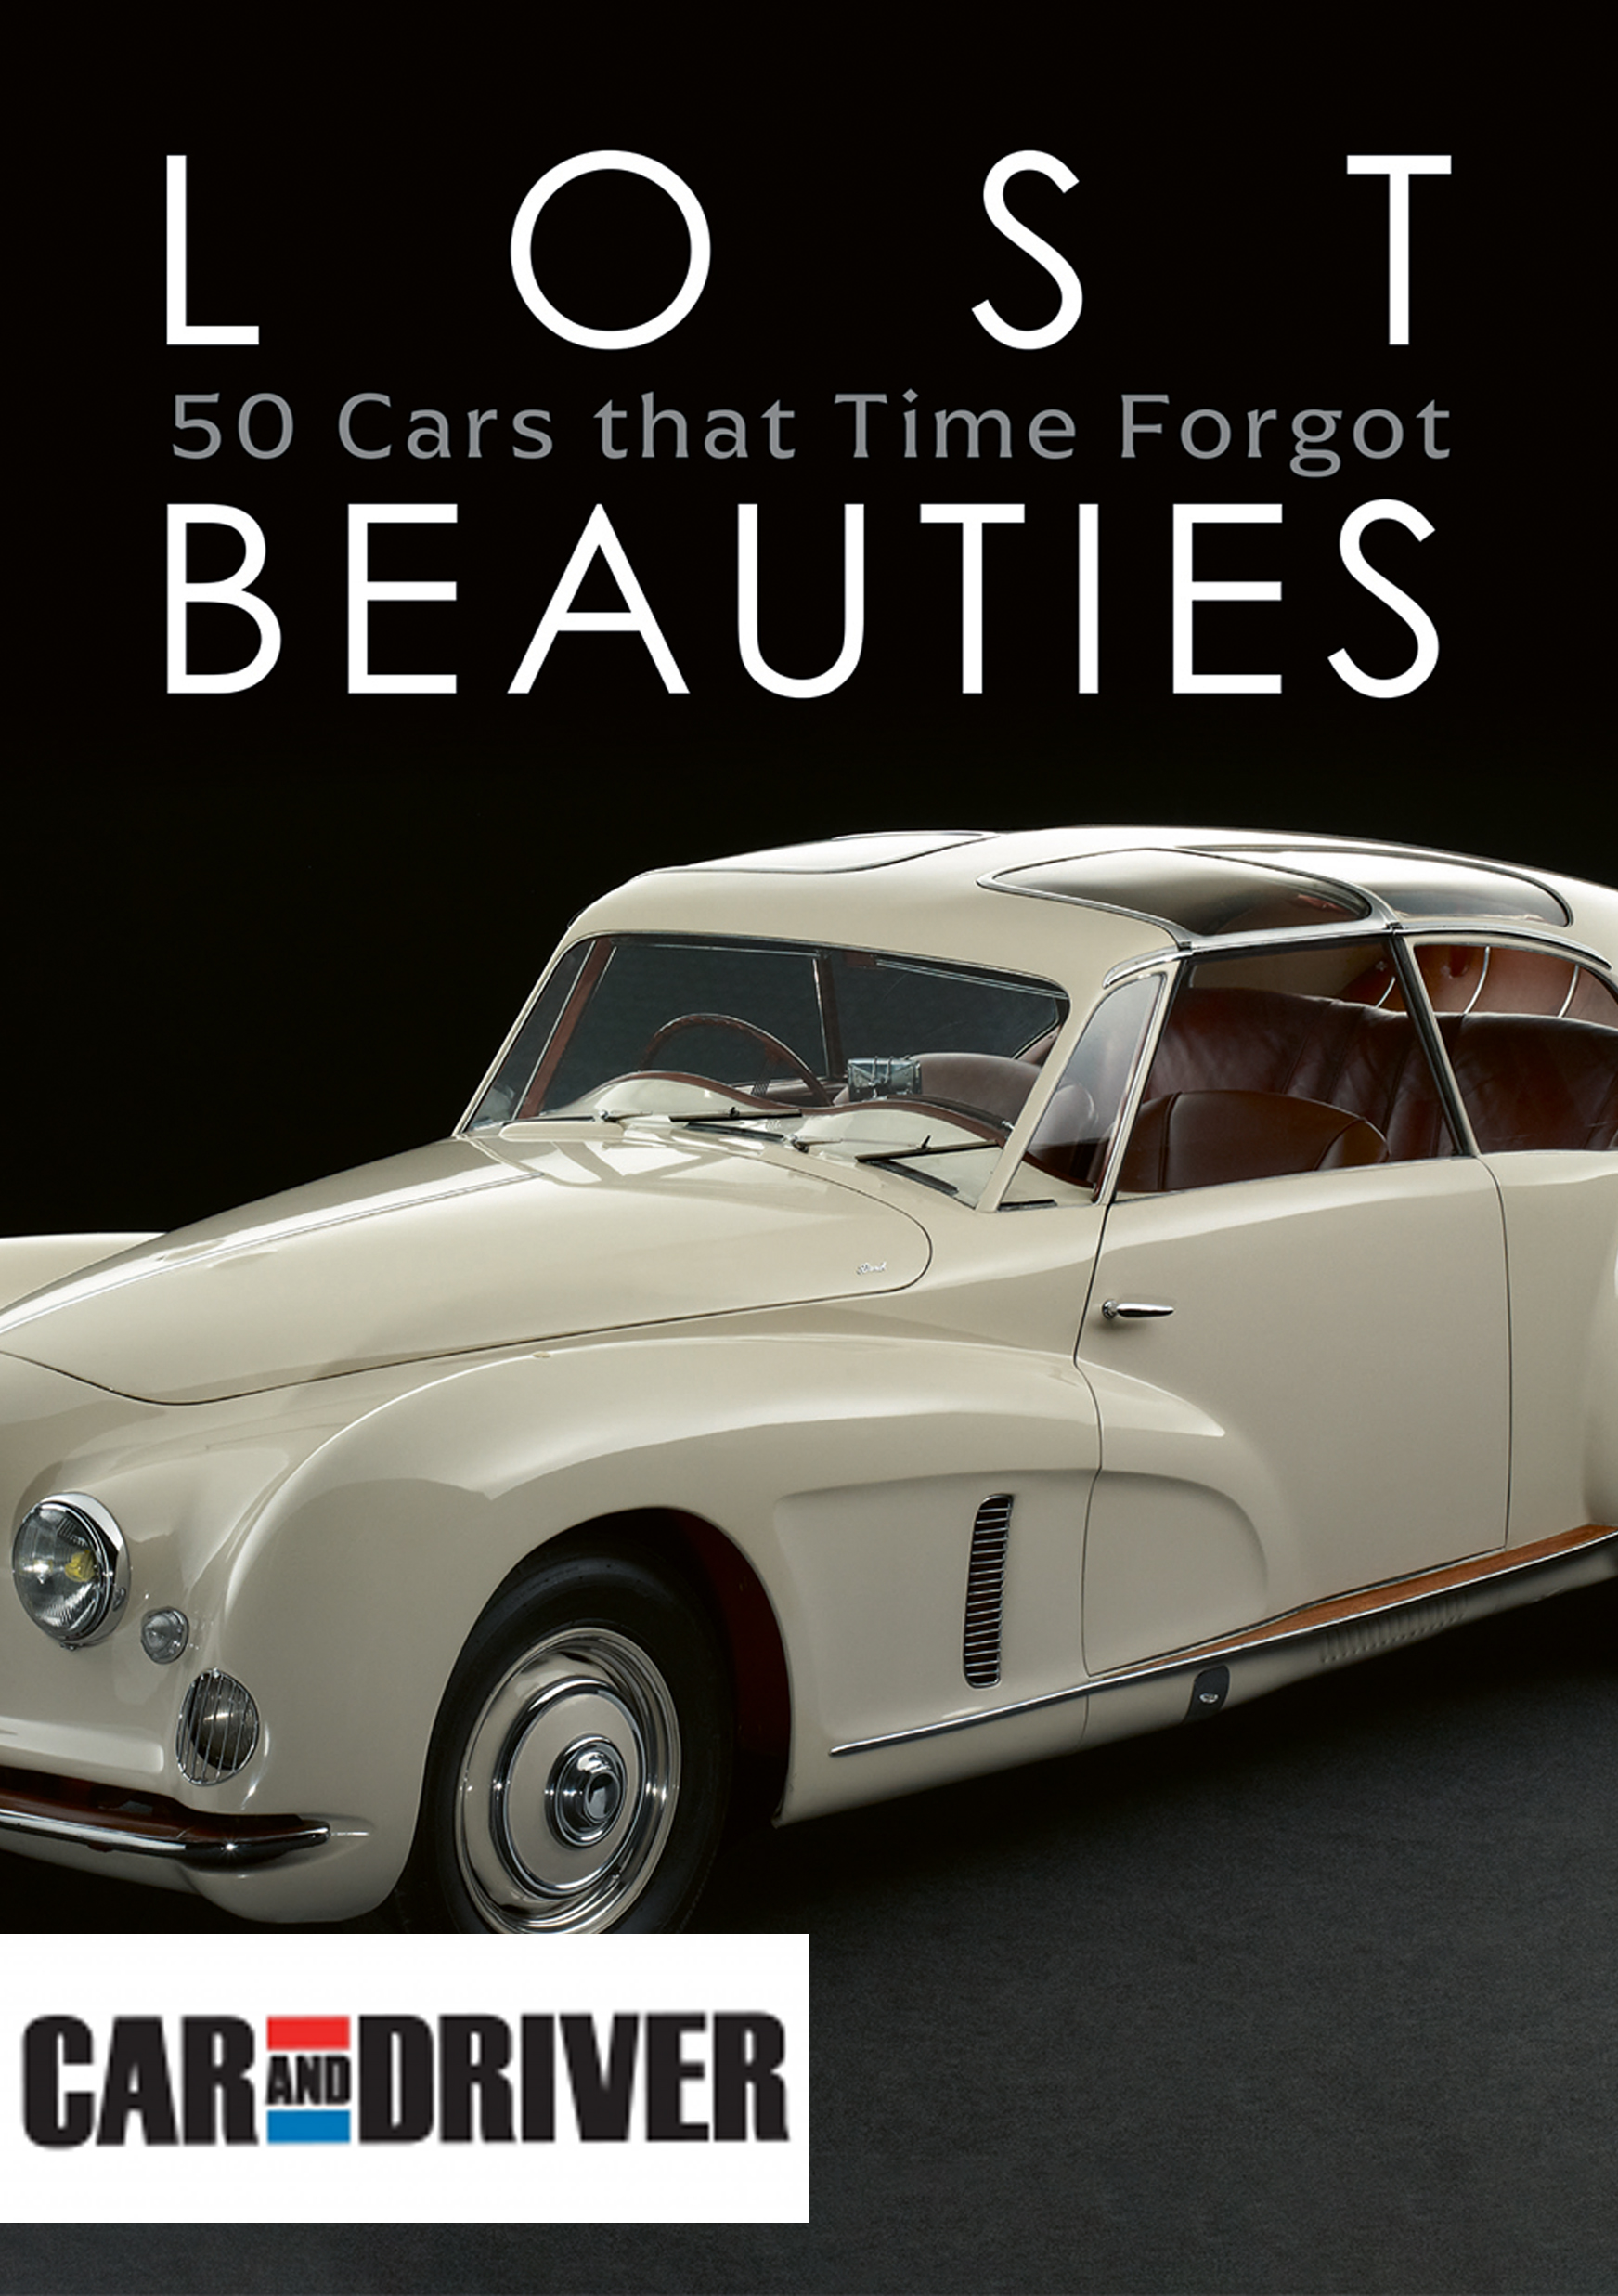 Fifty exquisite classic cars, perfectly staged by photographer Michel Zumbrunn, and 50 fascinating stories, recounted by classic car expert Axel E. Catton. Text in English and German.